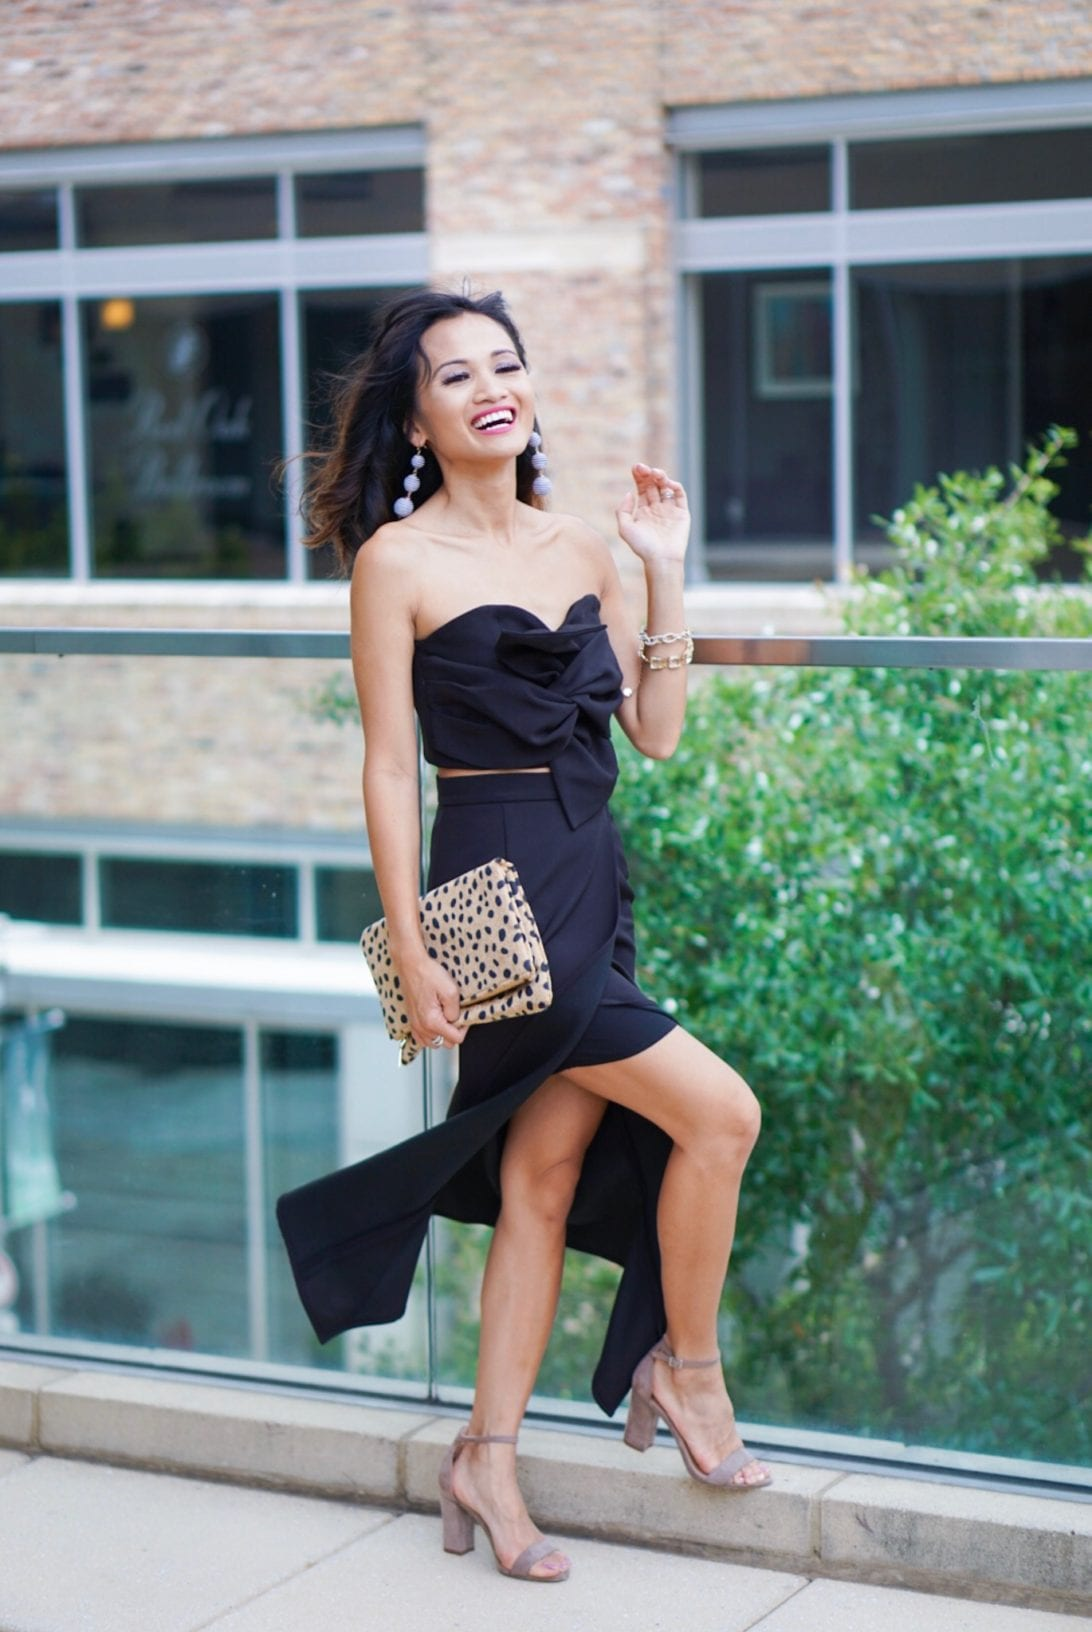 Sweet Knot Bustier Top and Flap Skirt Set,bustier top, crop top, two piece dress, bauble ball earring, block heels, and cheetah clutch, chicwish, date night outfit